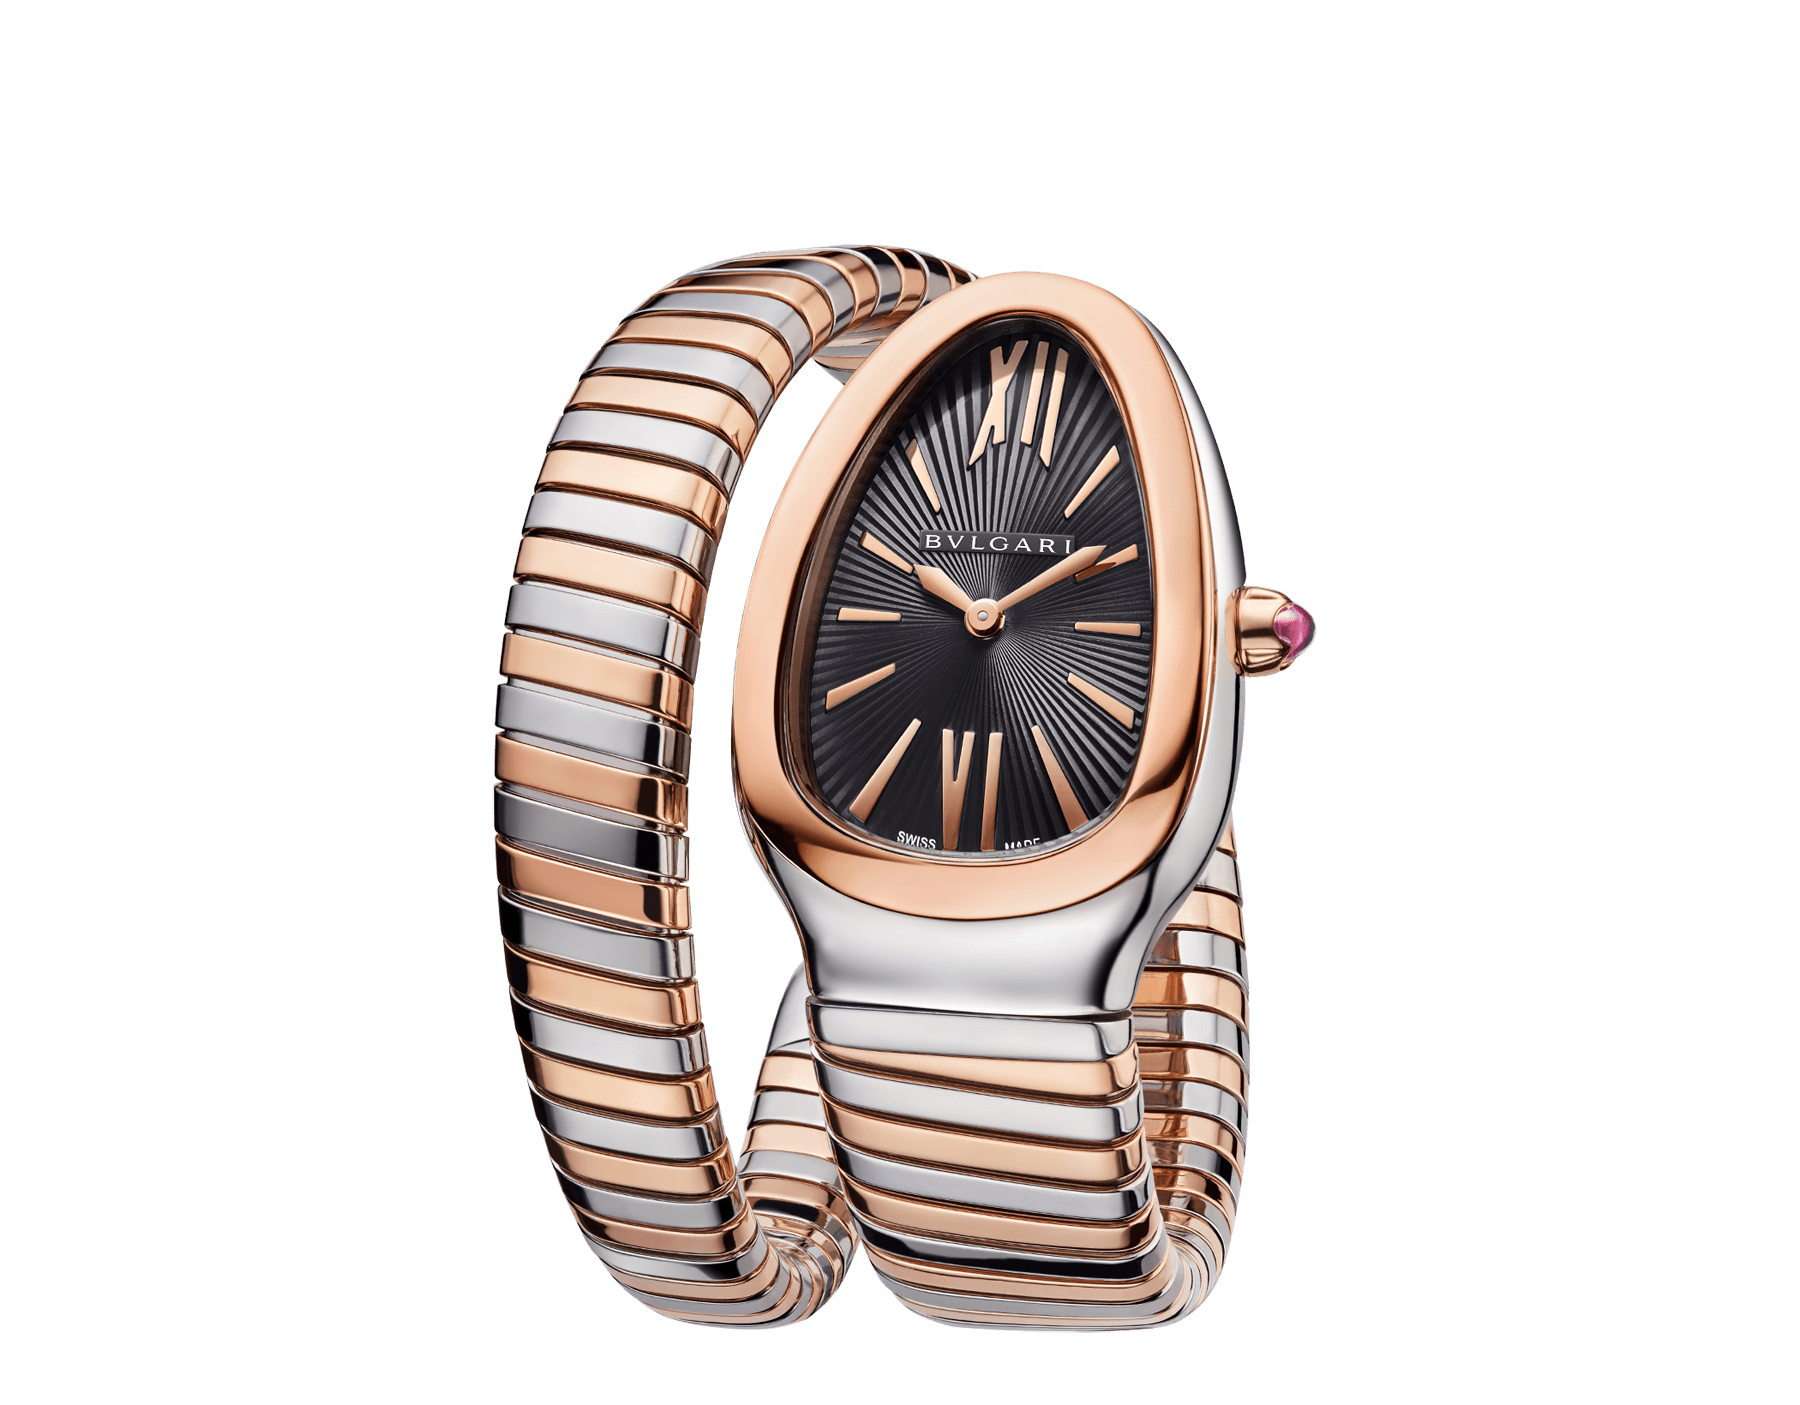 Serpenti Tubogas single spiral watch in 18 kt rose gold and stainless steel case and bracelet, with black opaline dial. 102123 image 2